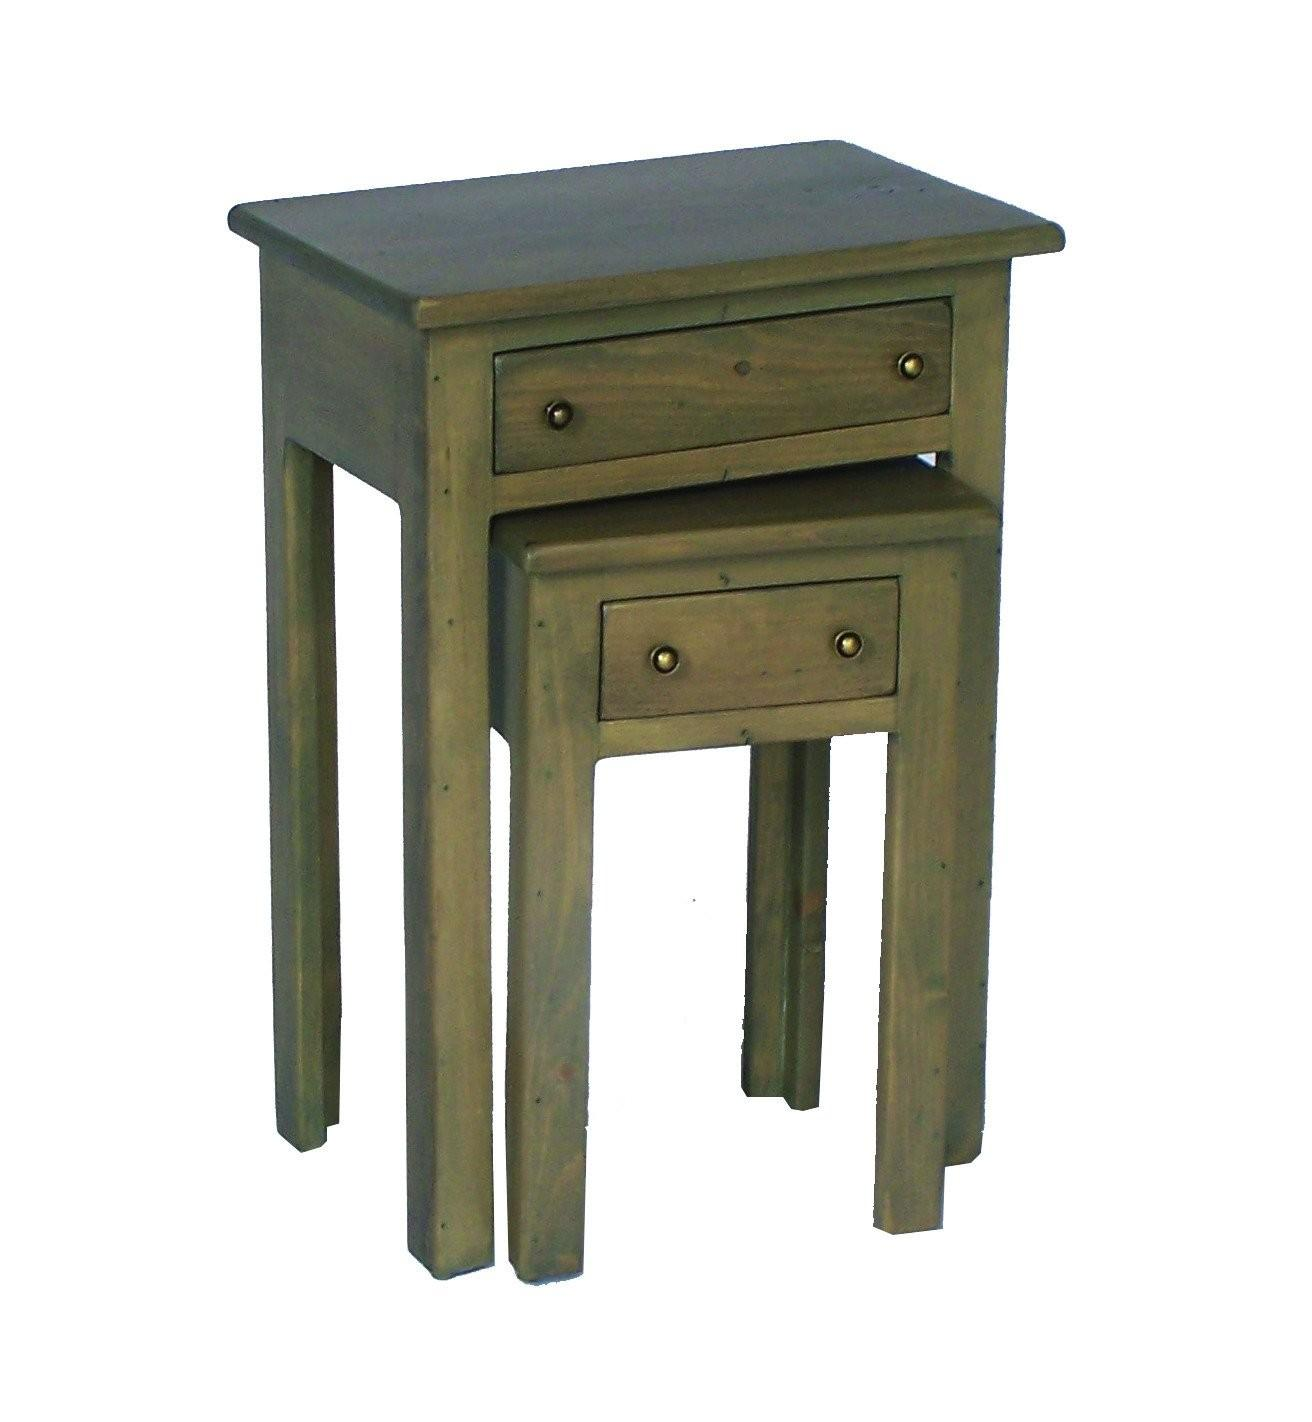 Nesting Tables Drawers Day Designs Rustic